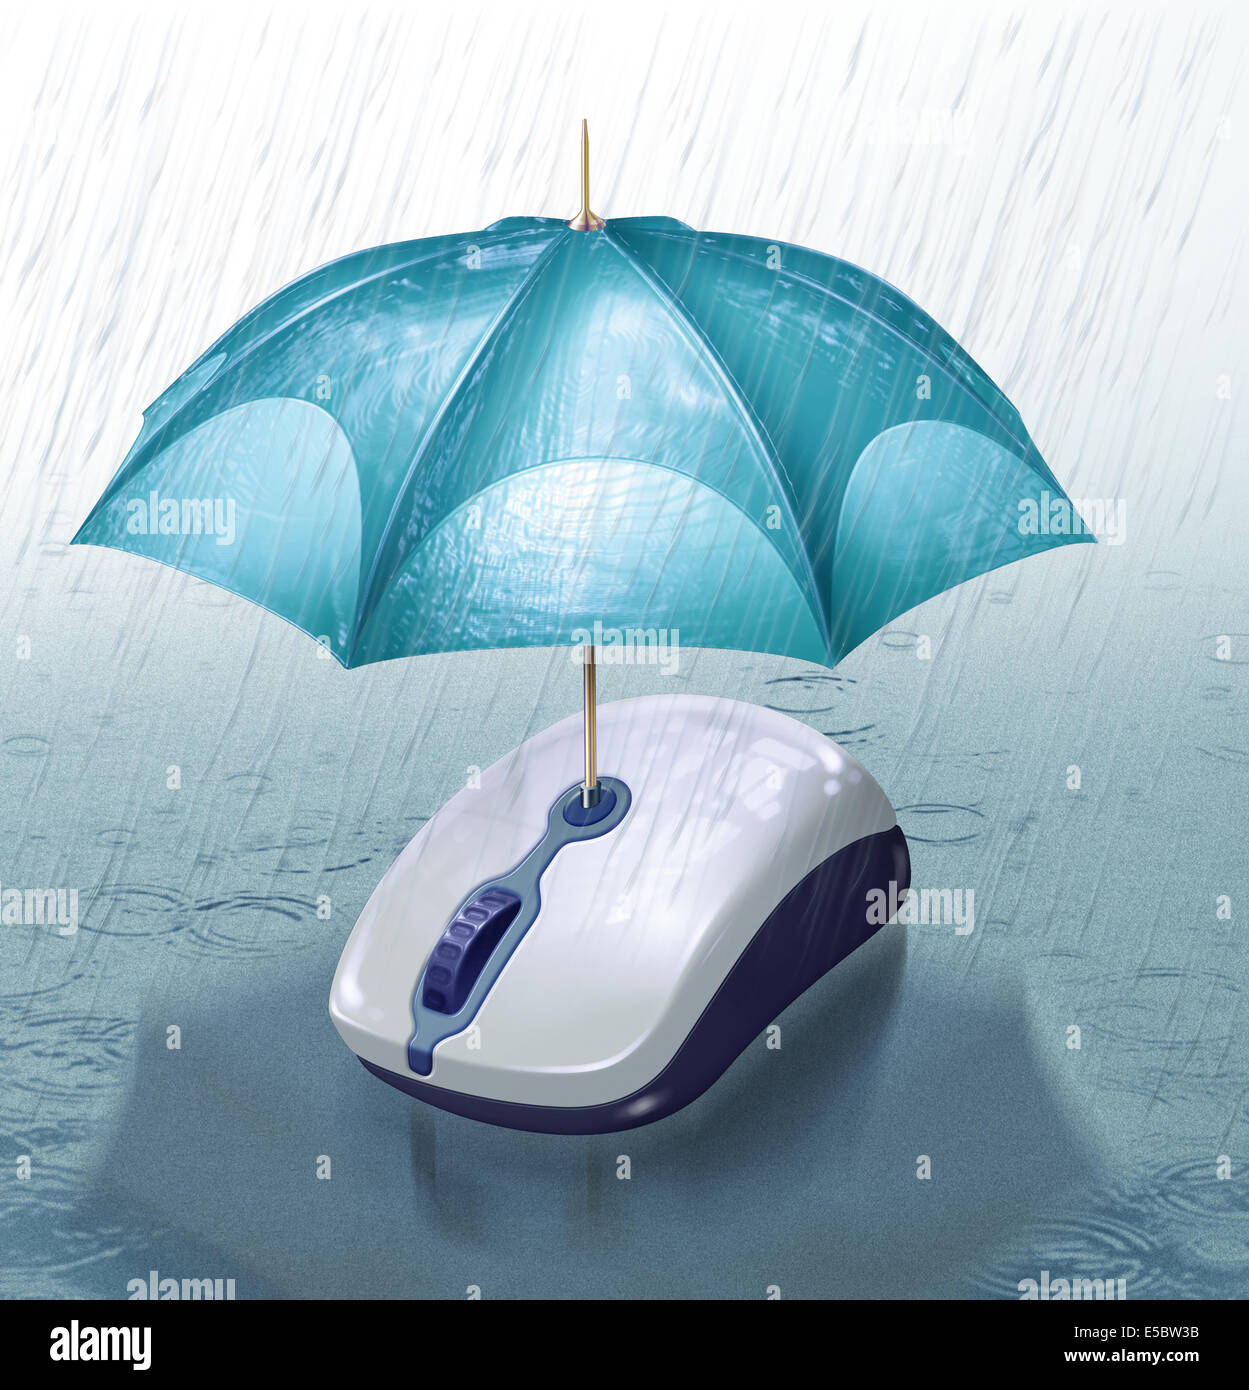 Illustrative image of umbrella covering computer mouse from rain representing online insurance - Stock Image